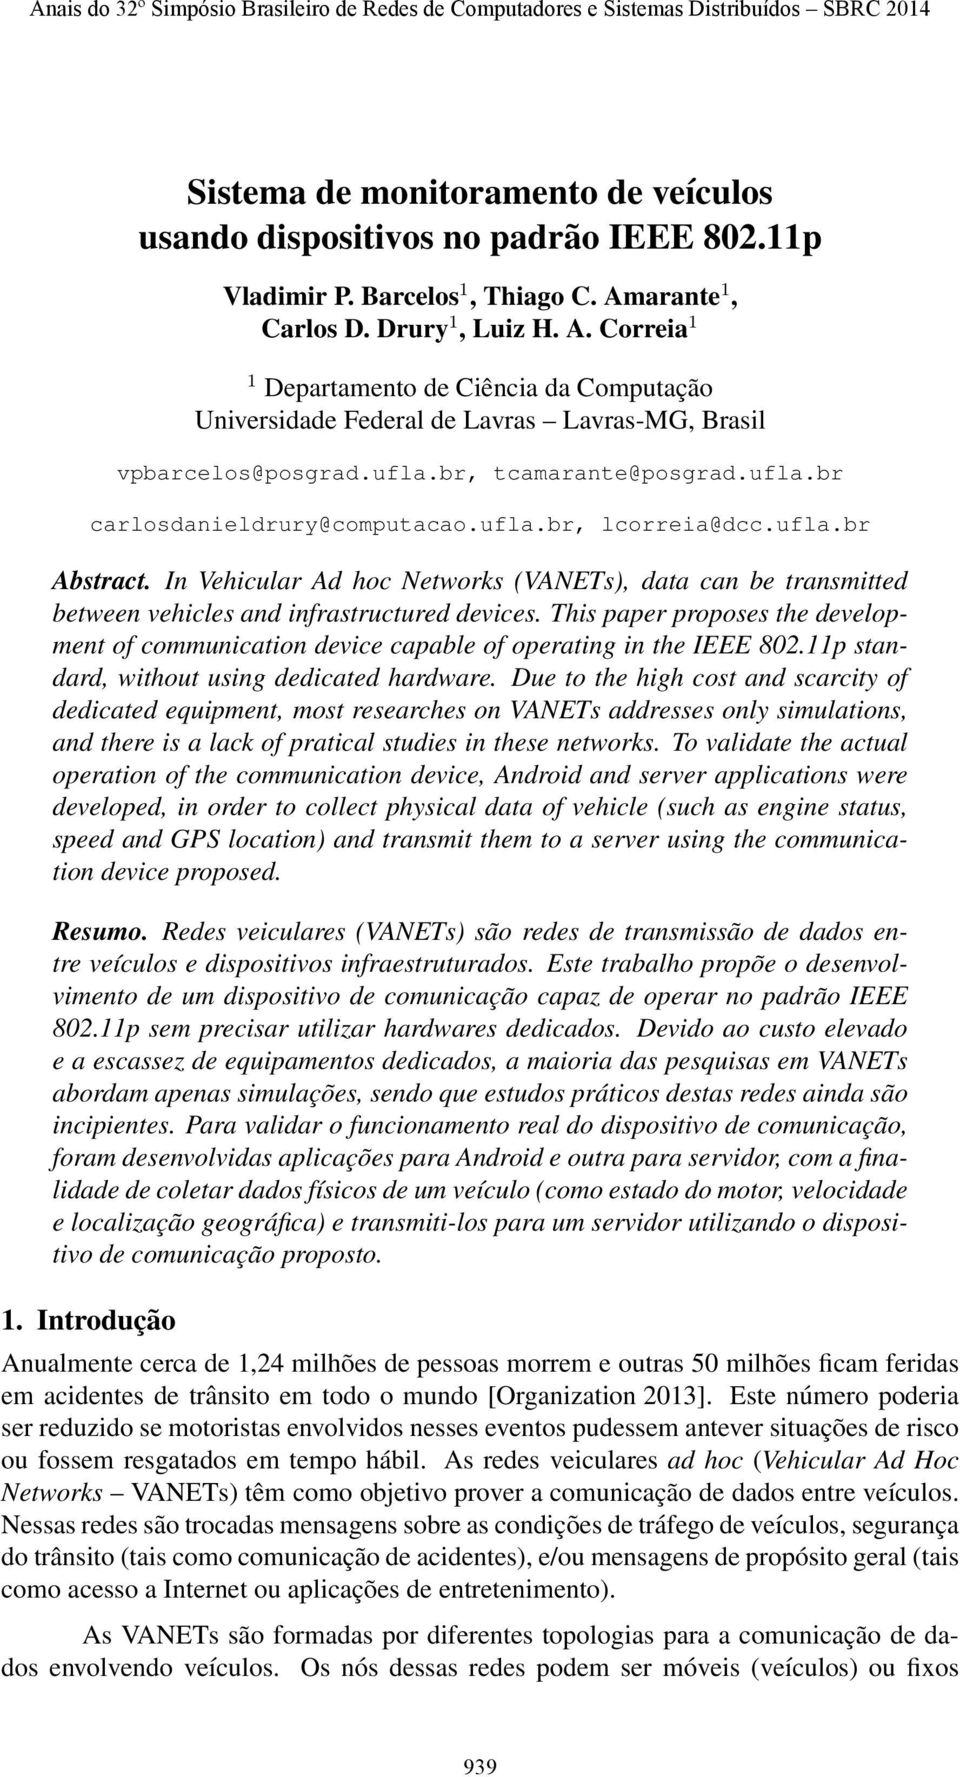 ufla.br, lcorreia@dcc.ufla.br Abstract. In Vehicular Ad hoc Networks (VANETs), data can be transmitted between vehicles and infrastructured devices.